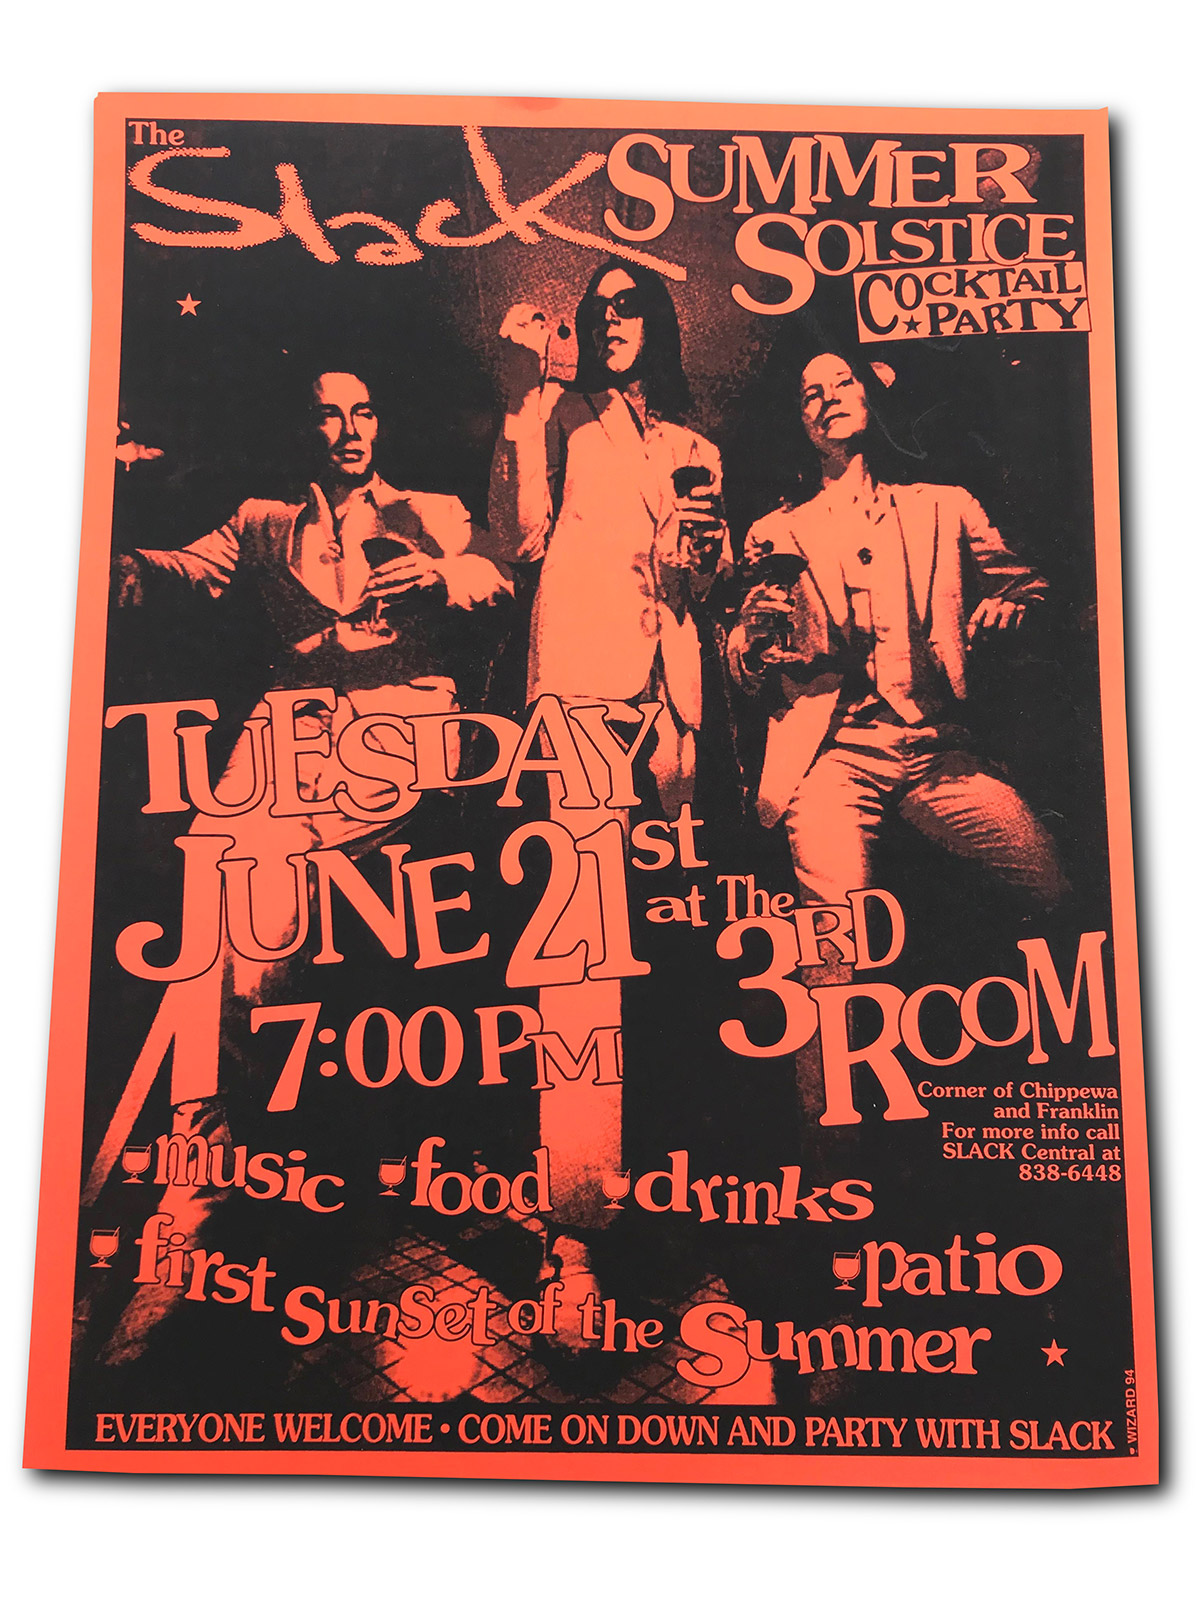 Slack magazine, Buffalo NY, summer solstice party, poster, Third Room, 1994